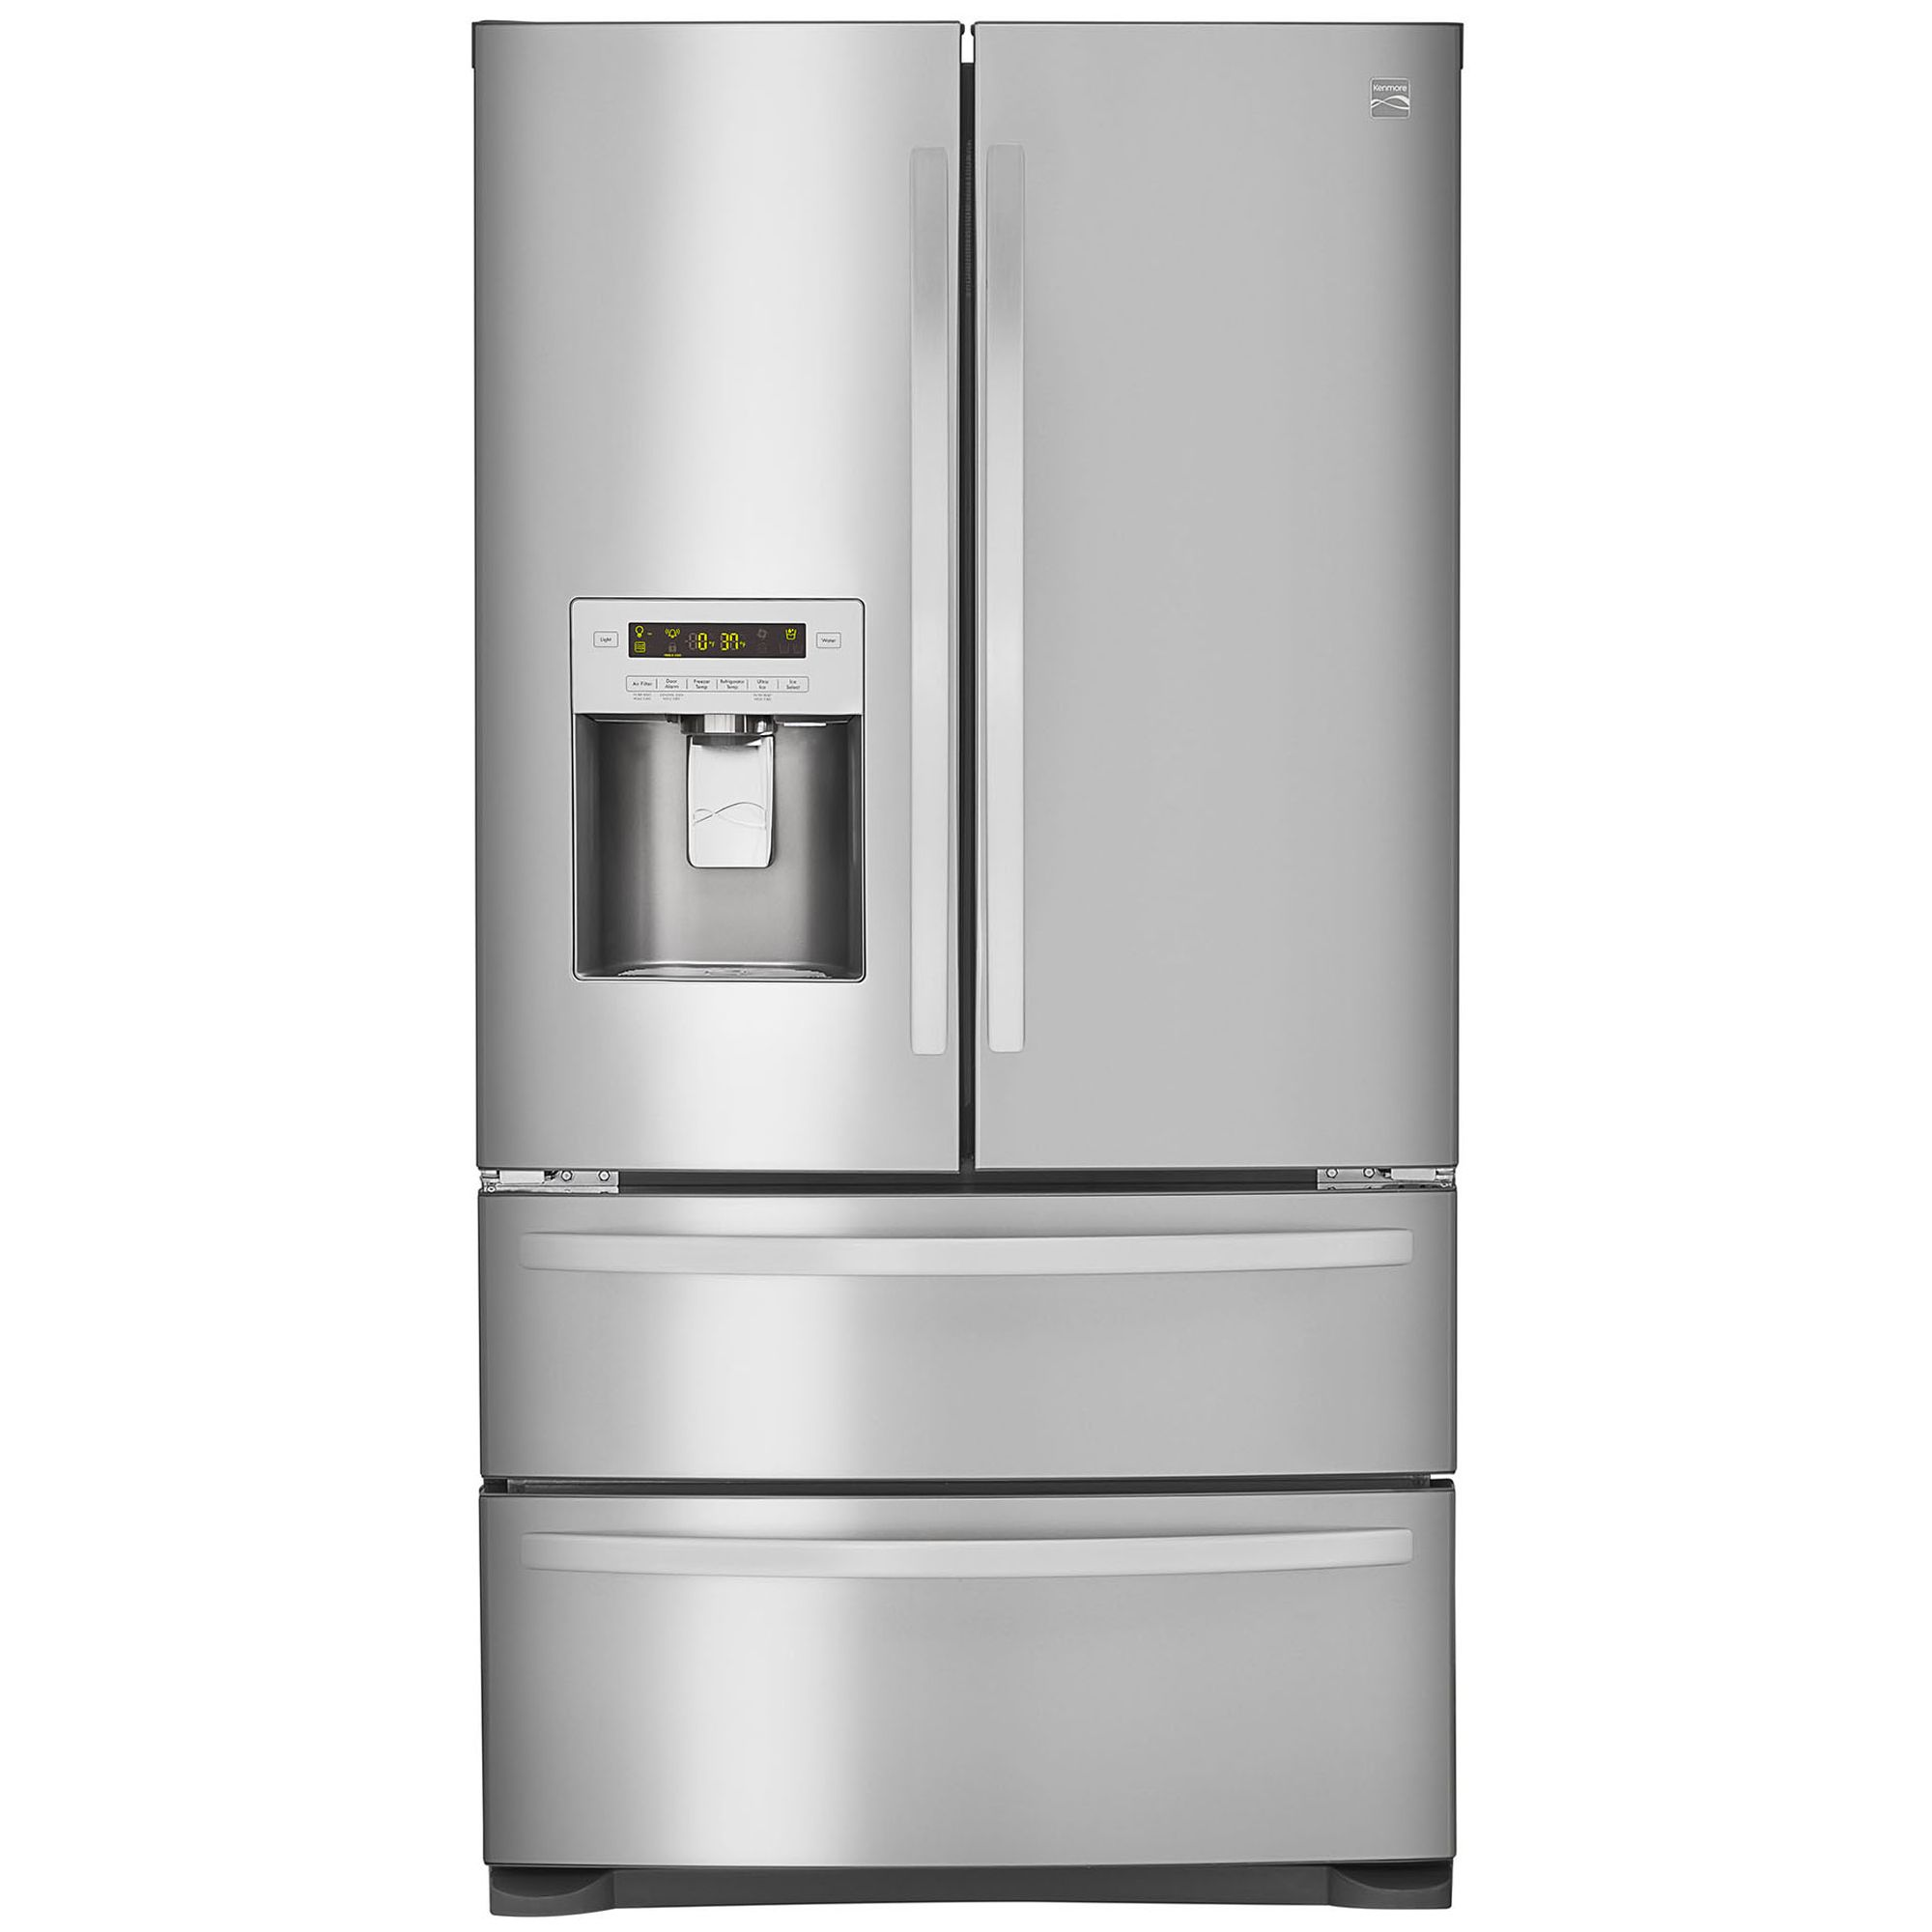 The 26 7 Cu Ft Refrigerator With Dual Freezer Drawers Makes It